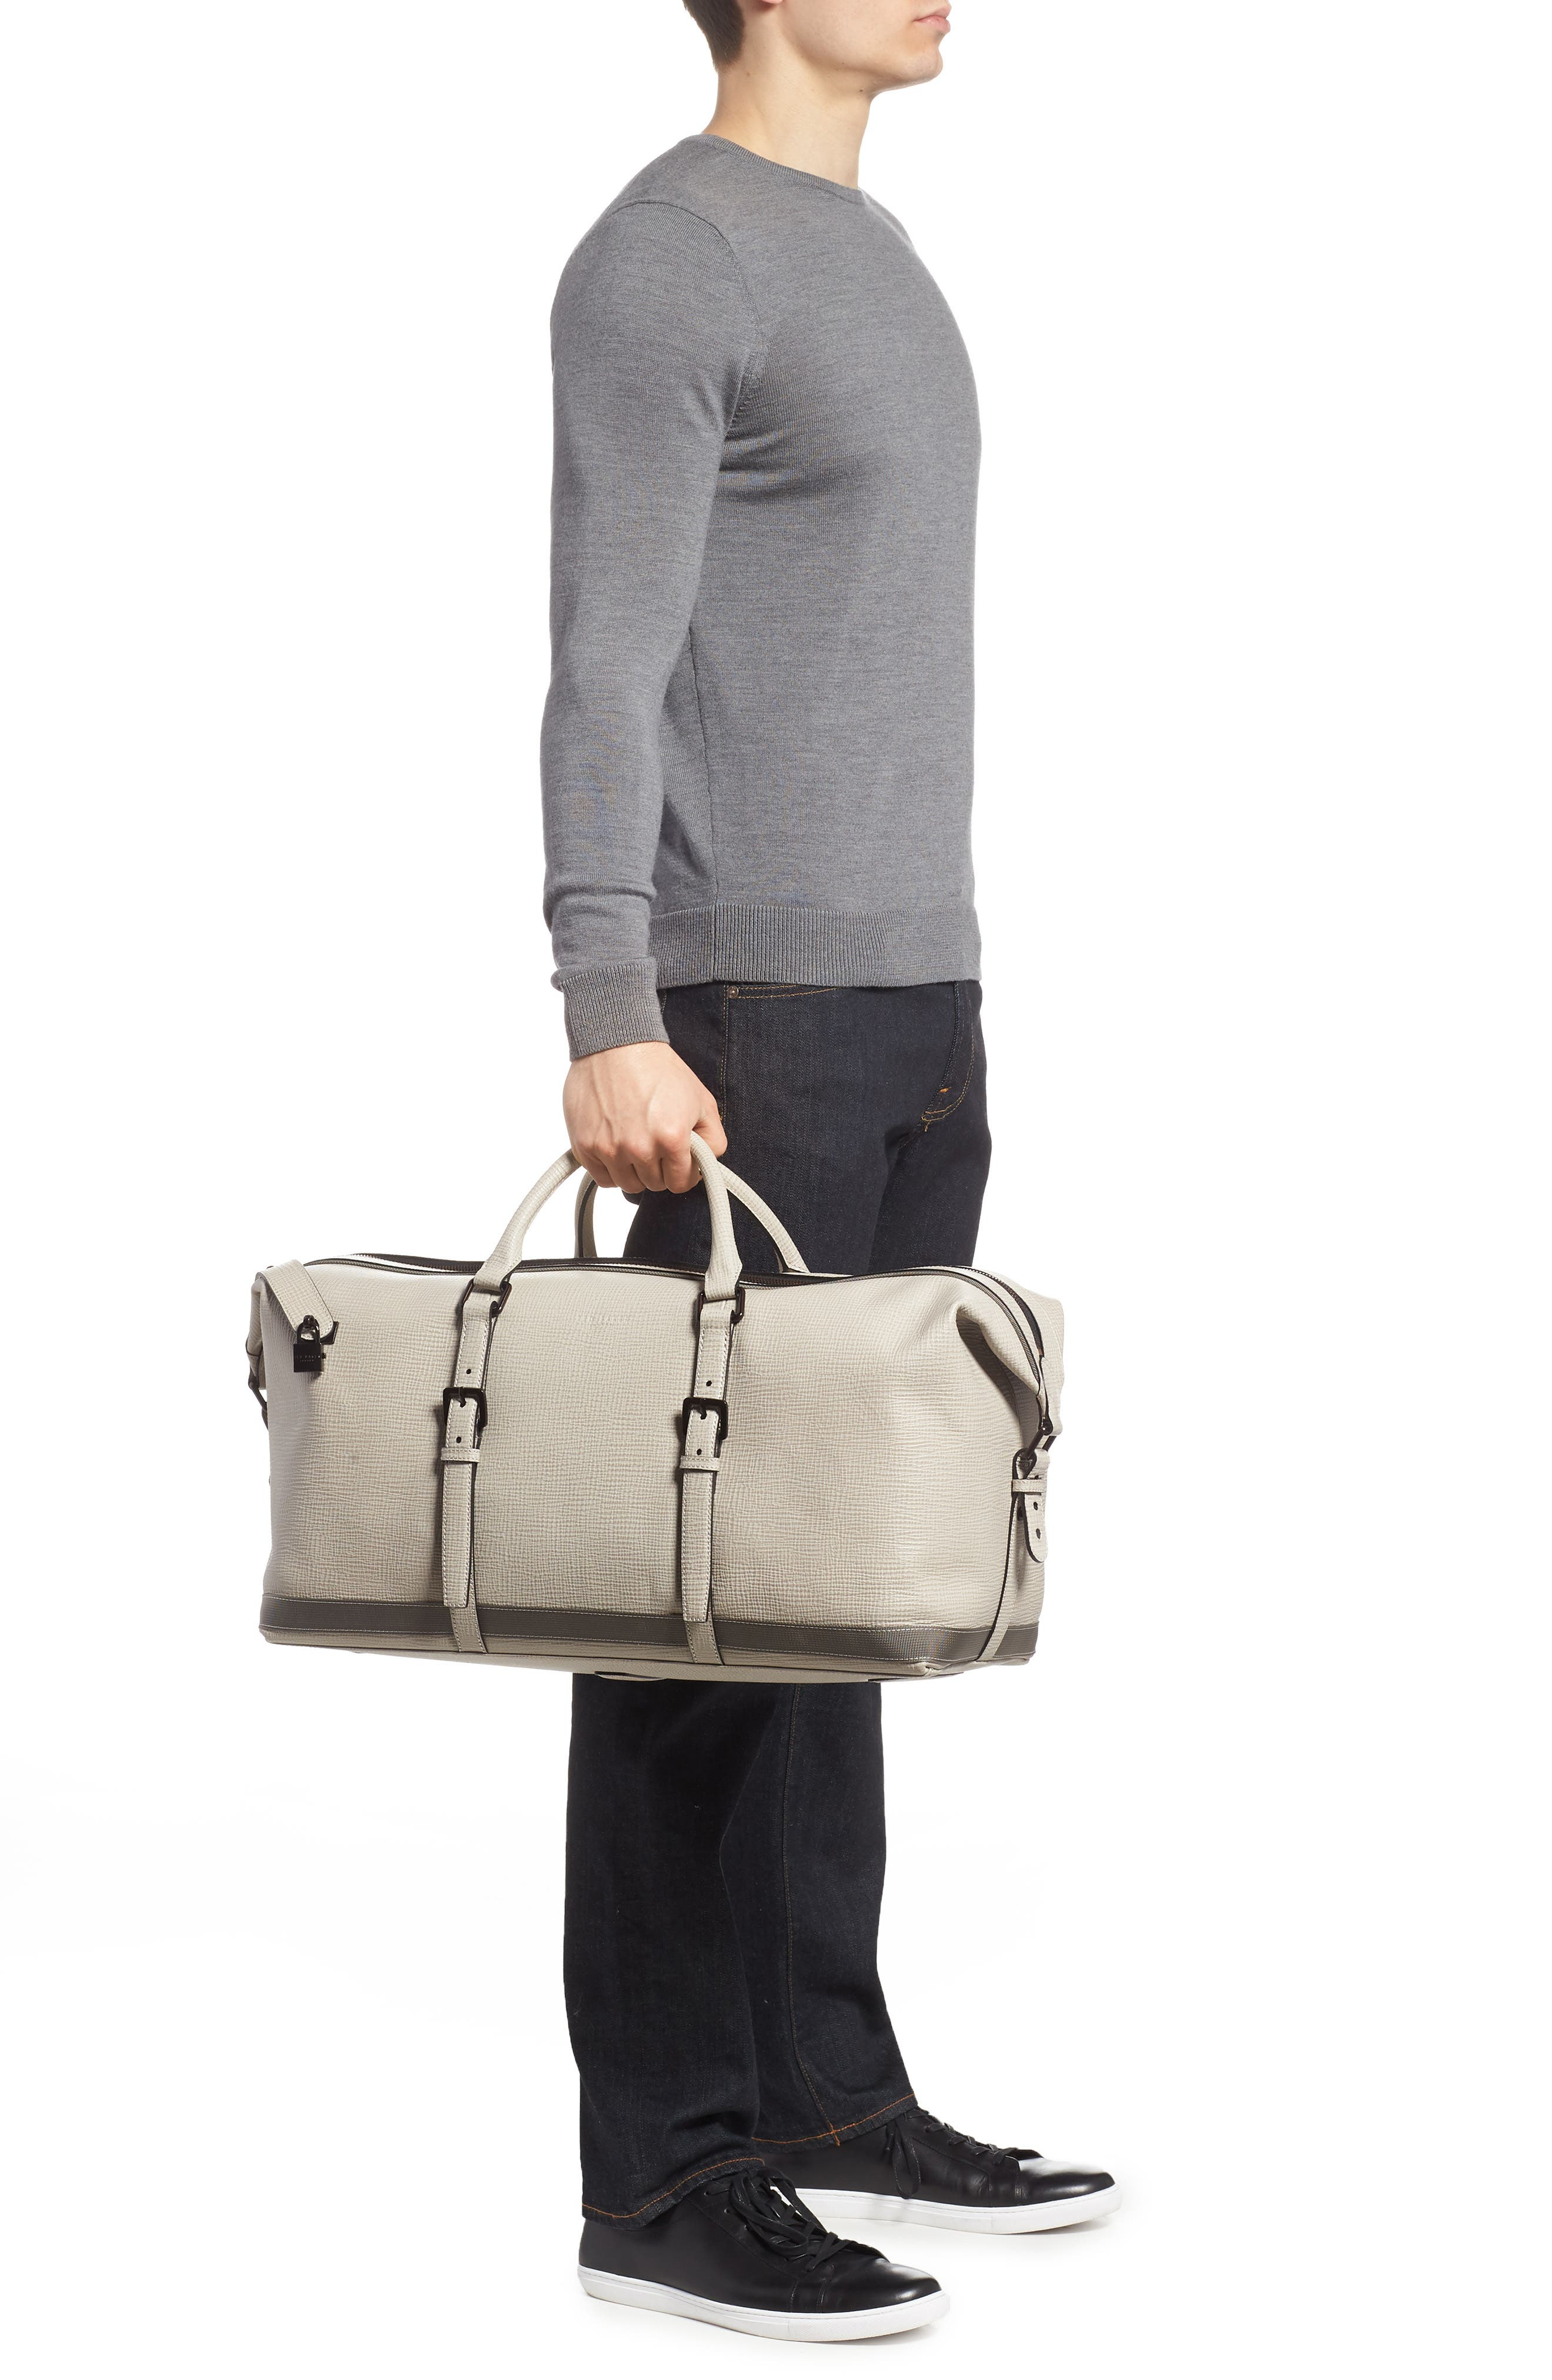 Ragmar Palmelato Holdall Duffel Bag,                             Alternate thumbnail 2, color,                             NATURAL